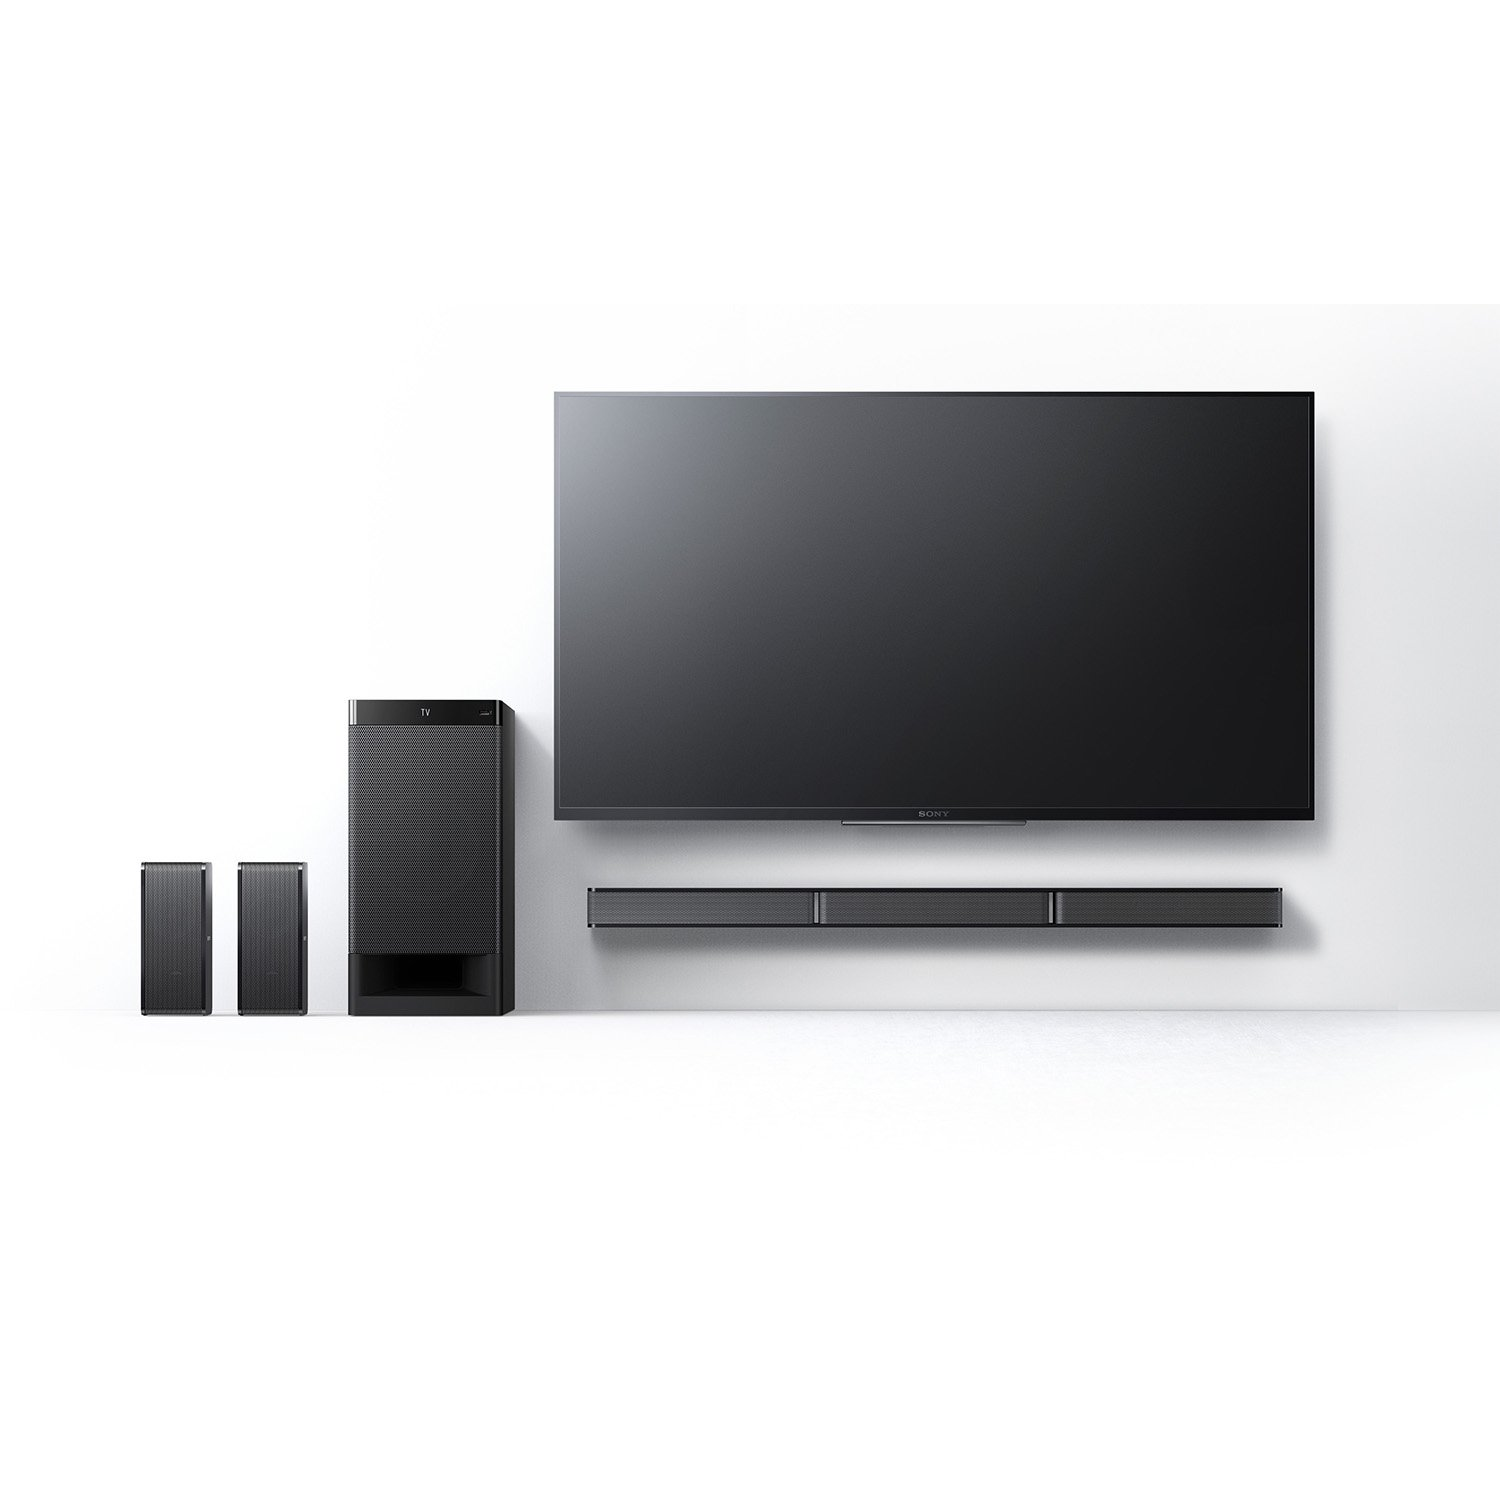 Sony HT-RT3 Real 5.1ch Dolby Digital Soundbar Home